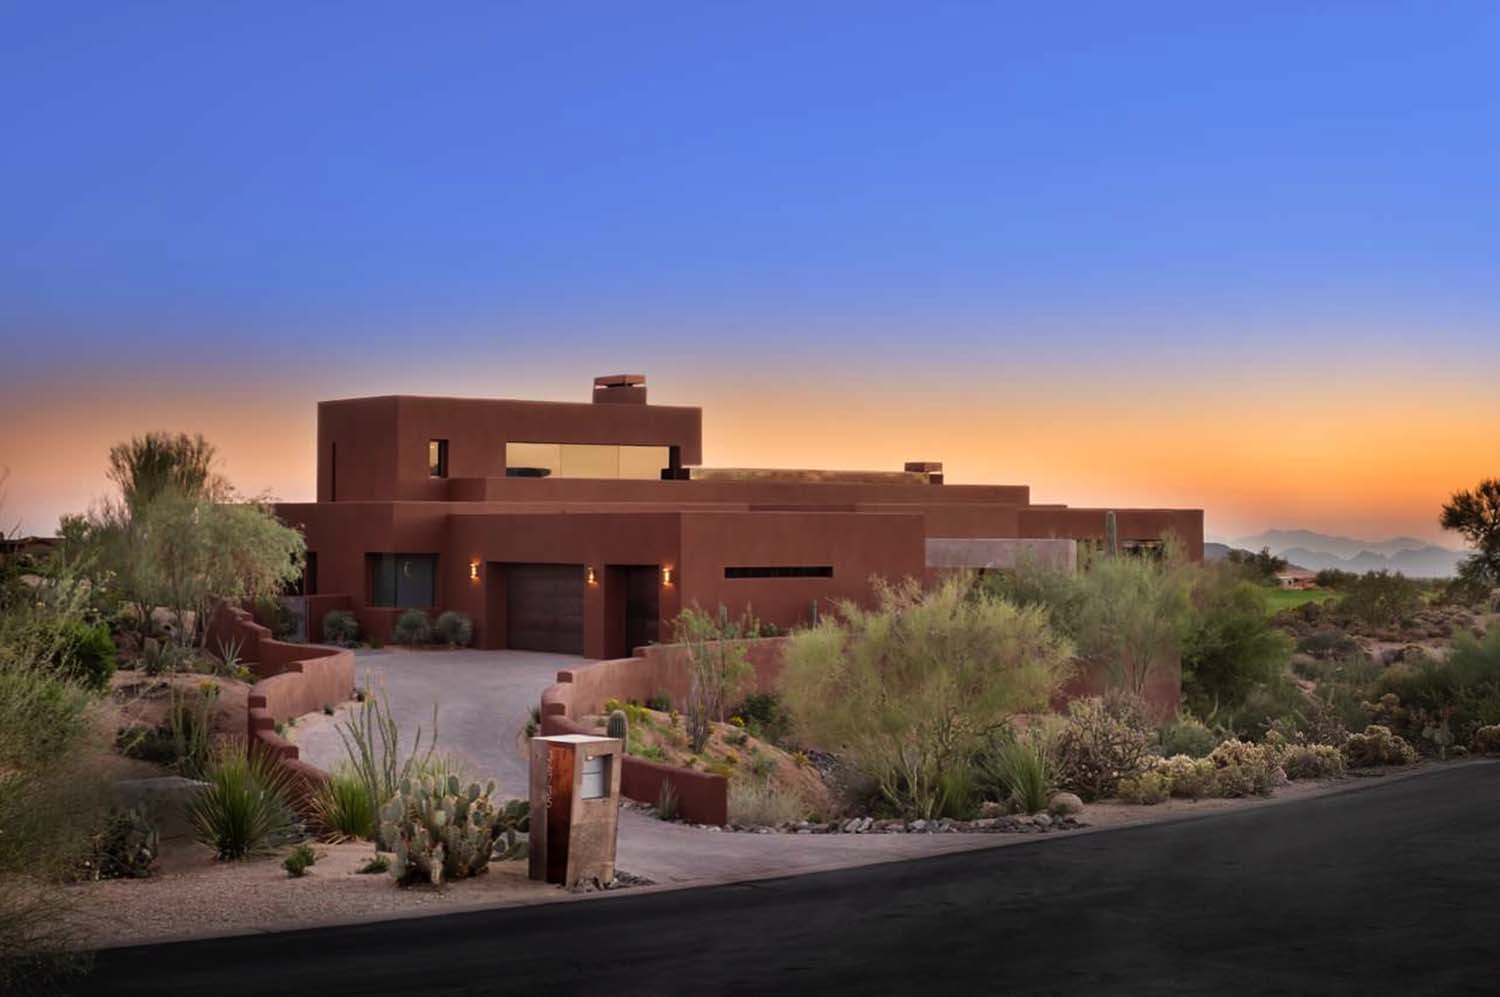 Contemporary Desert Home-Tate Studio Architects-03-1 Kindesign